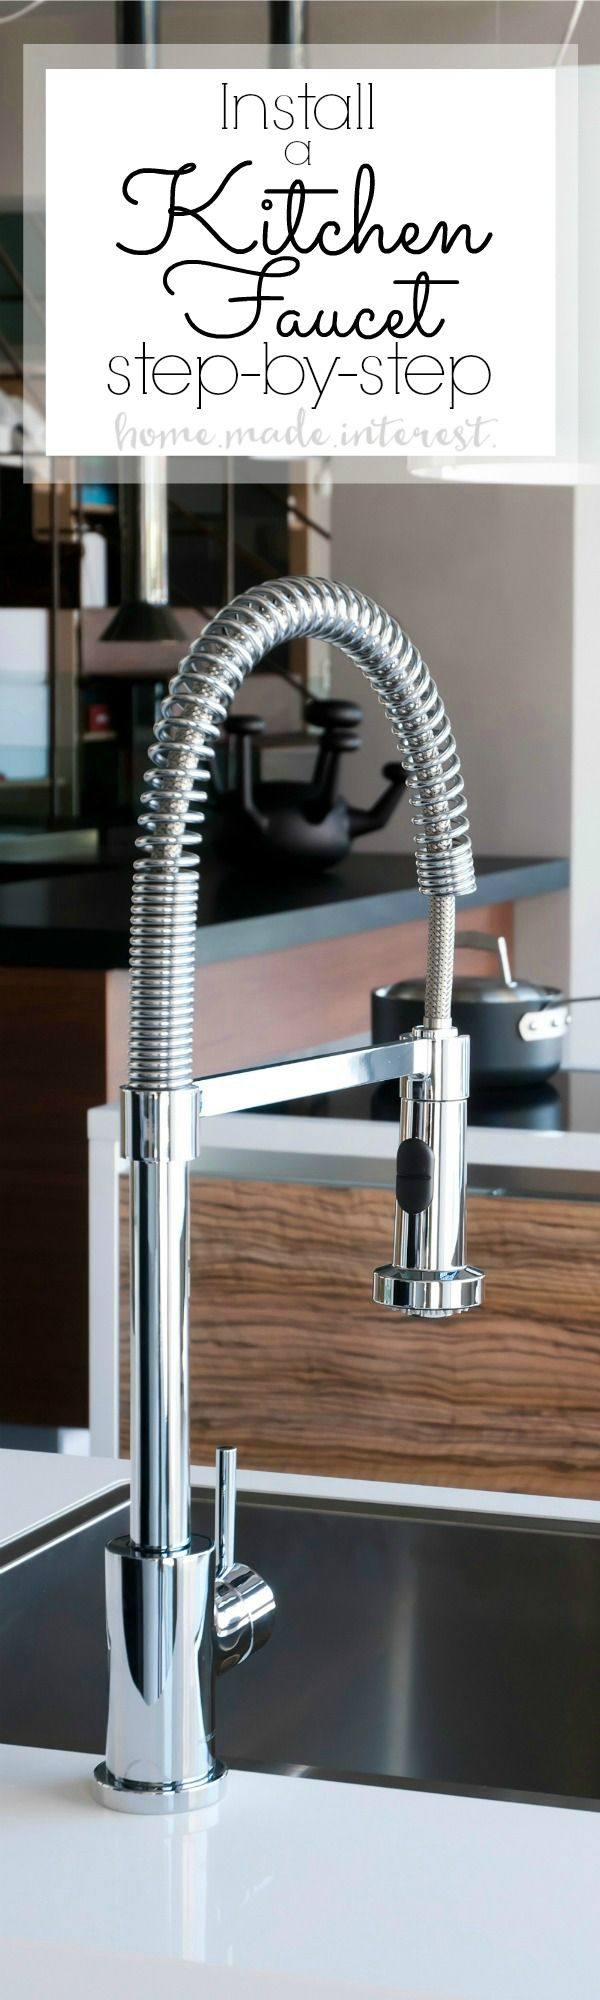 My Kitchen Faucet Drips